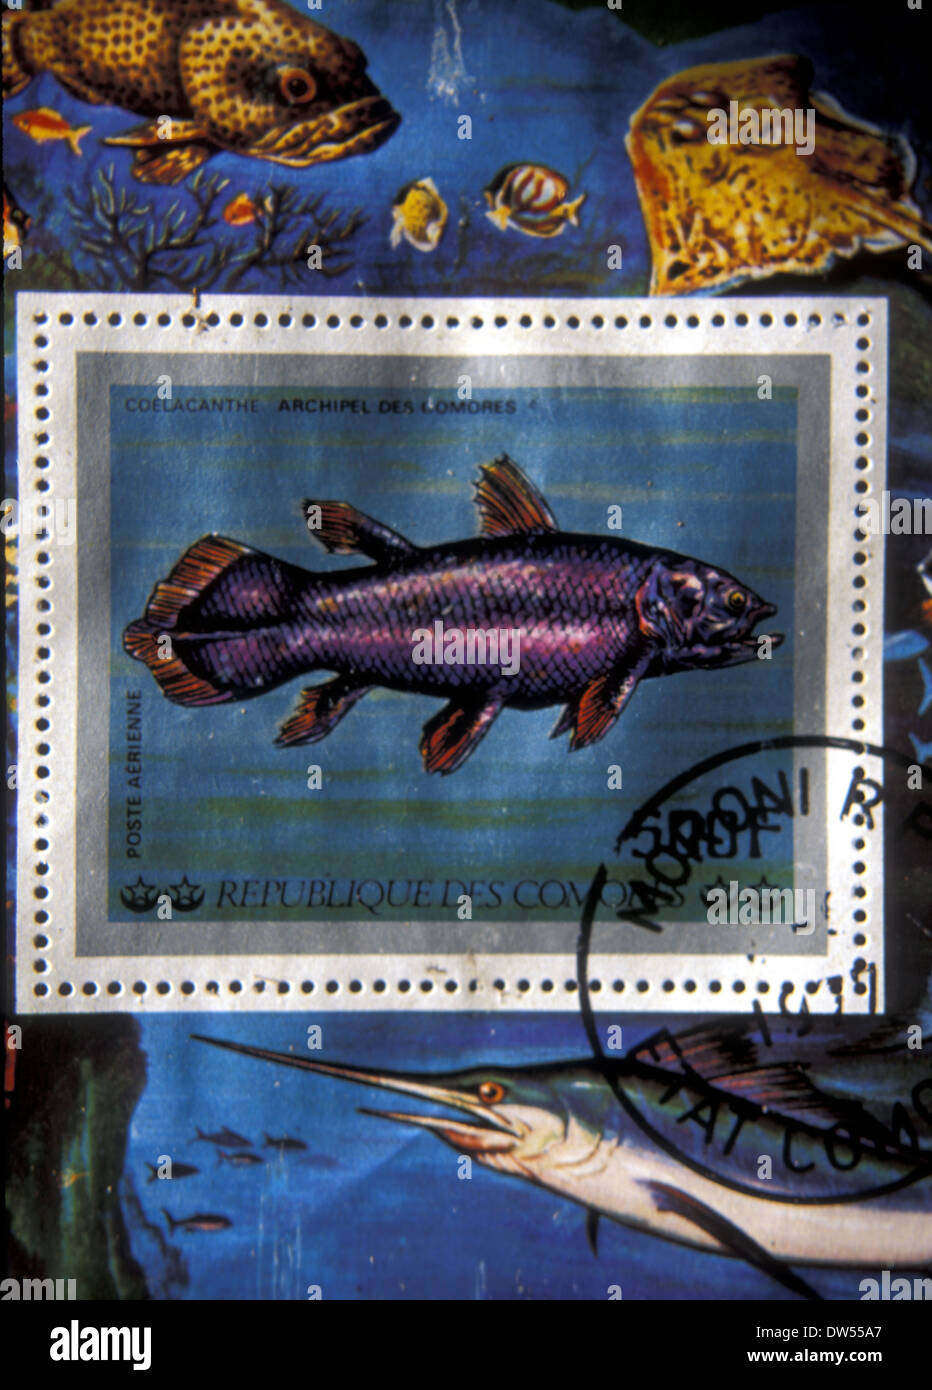 Commemorative postage stamp featuring the coelacanth or prehistoric fish found in Indian Ocean off the Comores - Stock Image